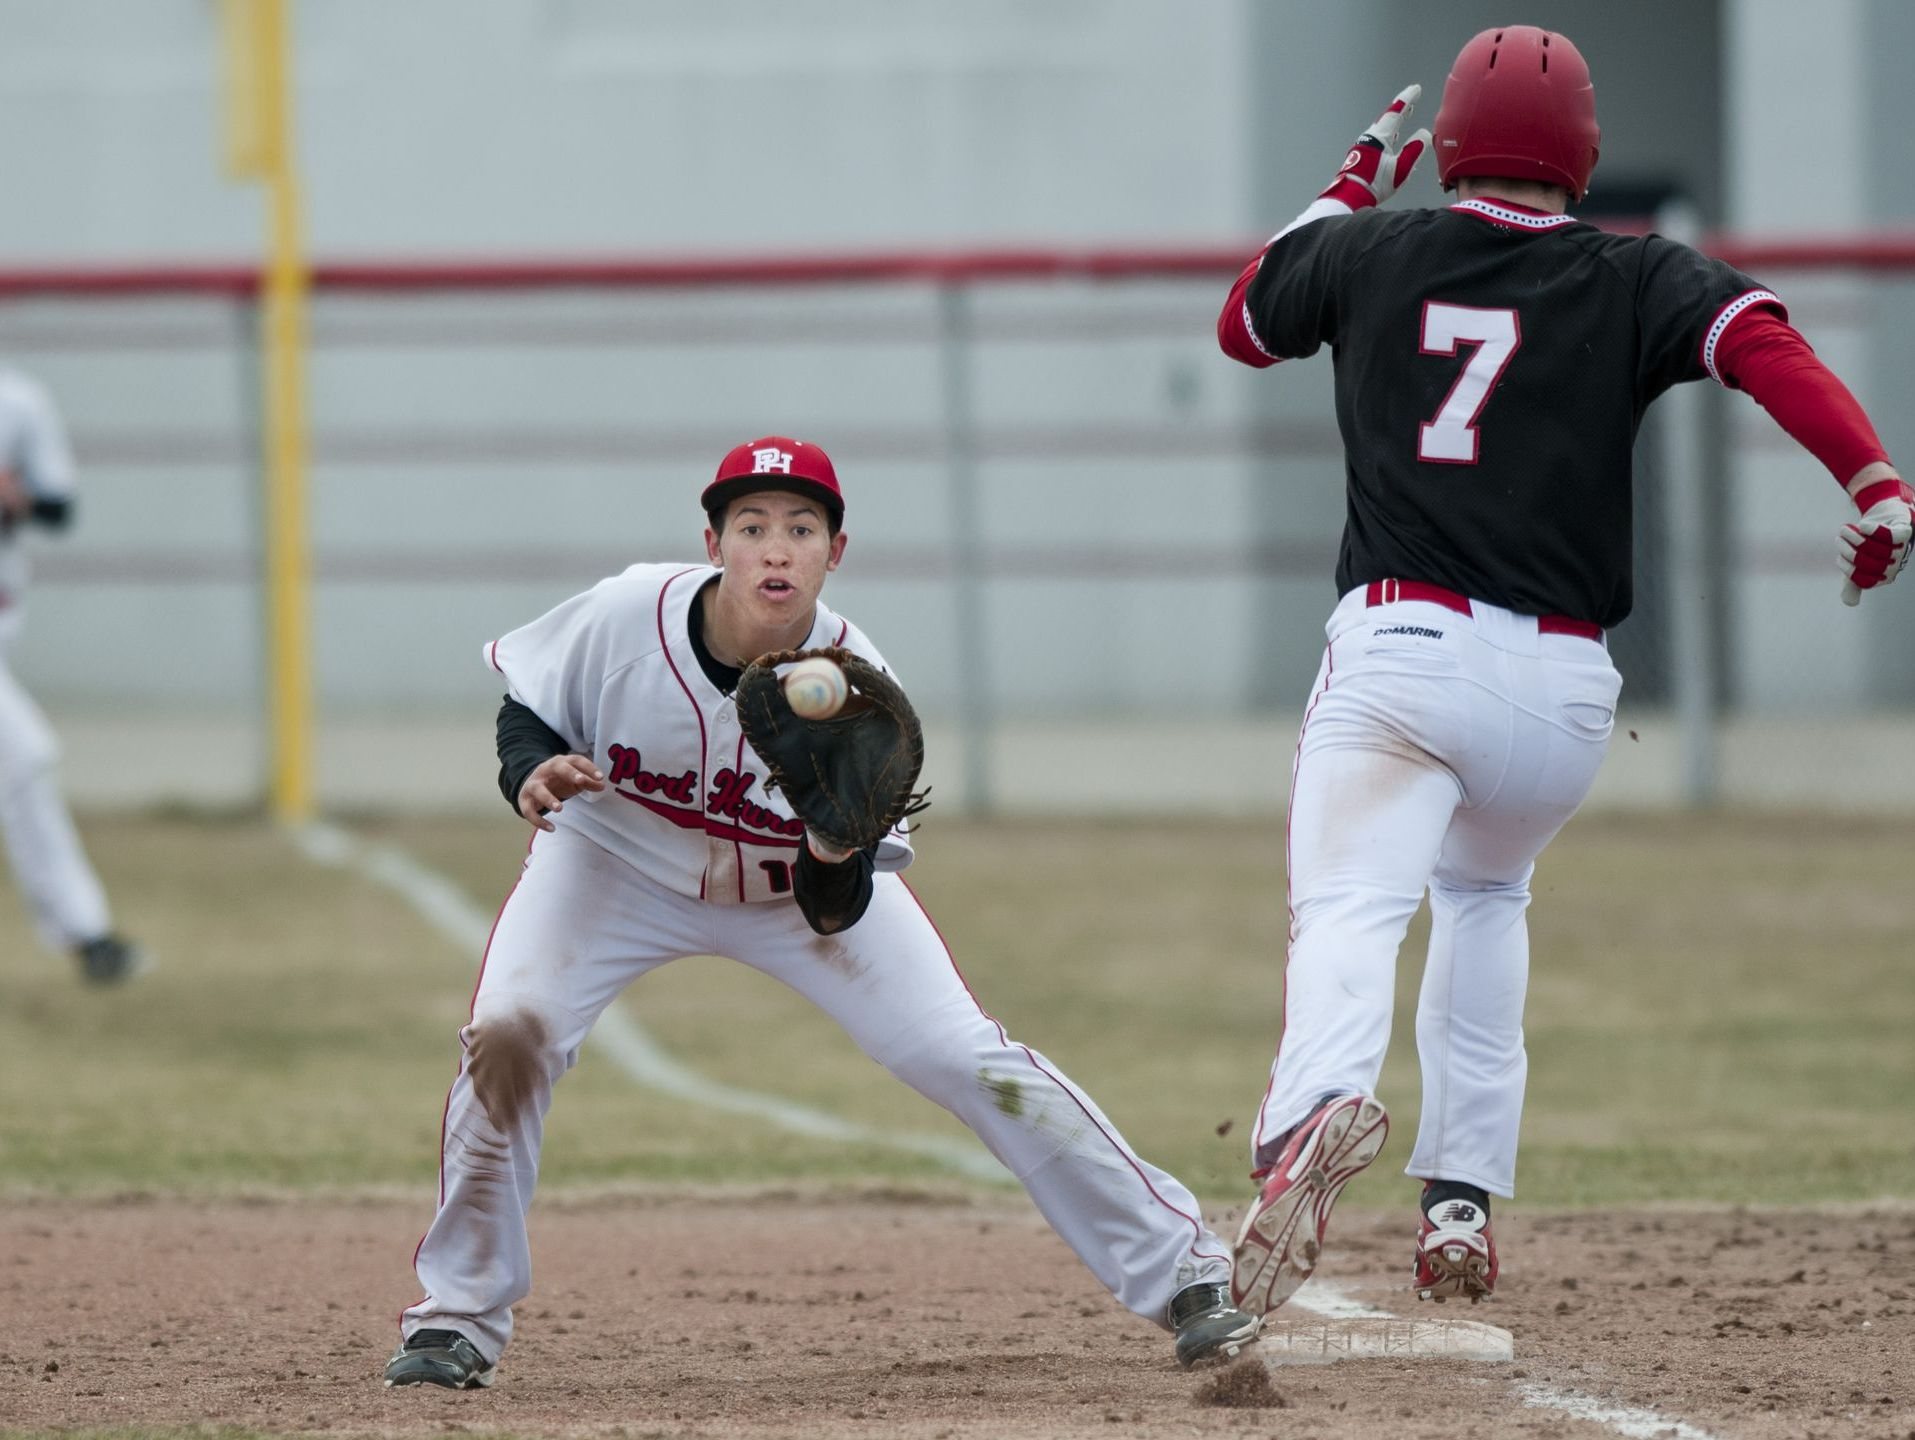 Port Huron's Dallas Mitchell forces out Chippewa Valley's Brendan Murphy at first during a baseball game Tuesday, April 7, 2015 at Port Huron High School.